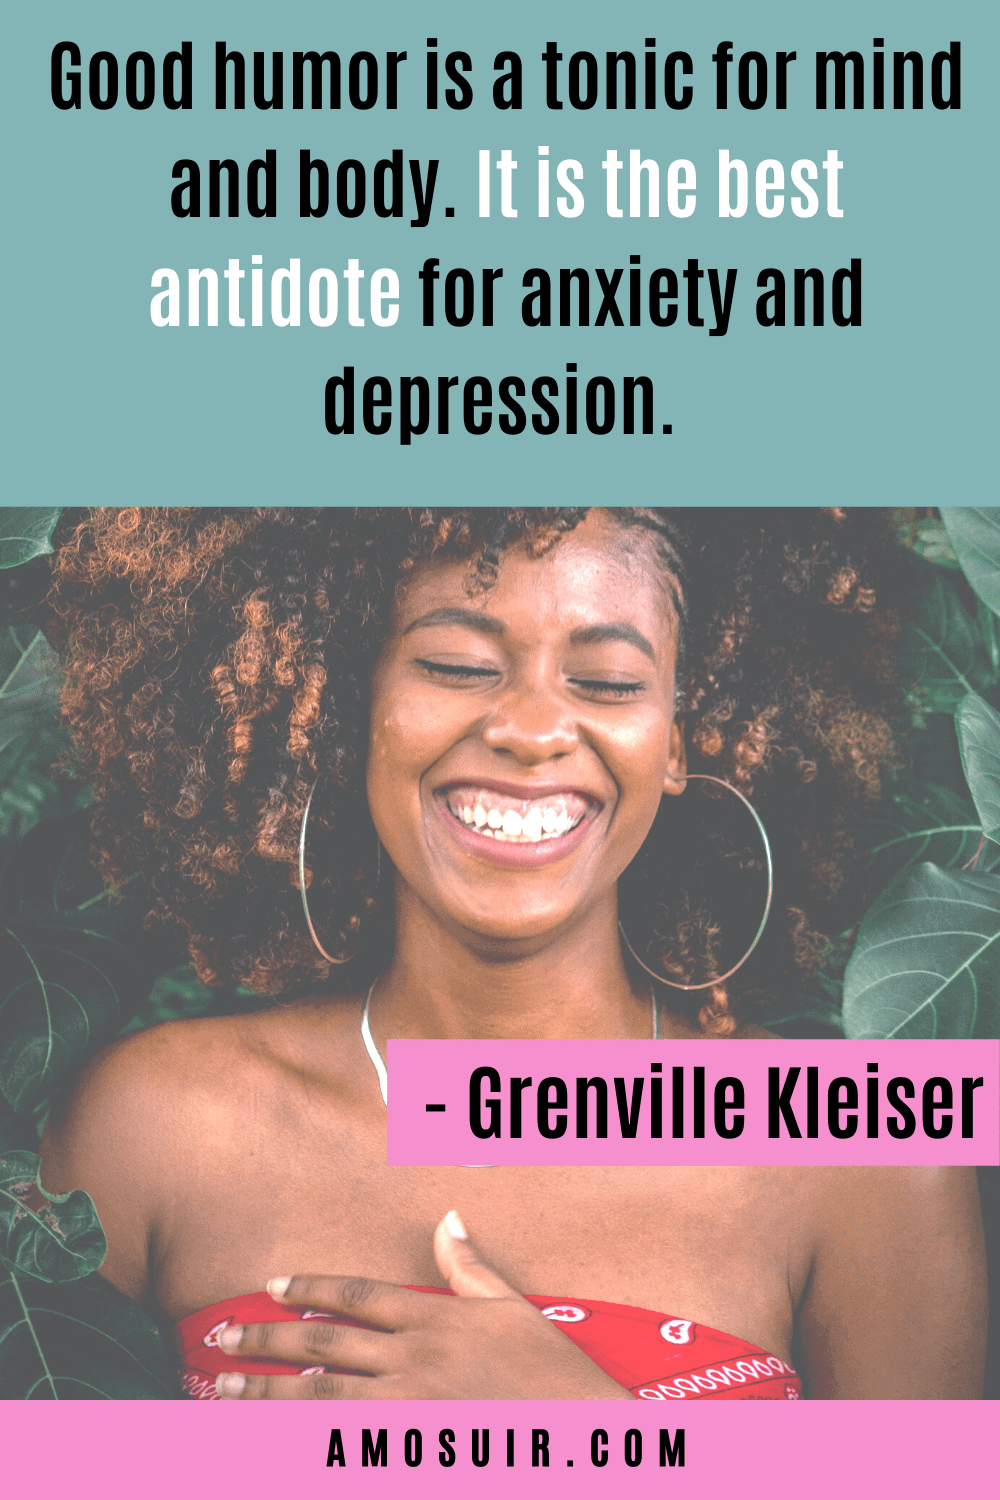 inspirational quotes for depression and anxiety -good humor is a tonic for mind and body